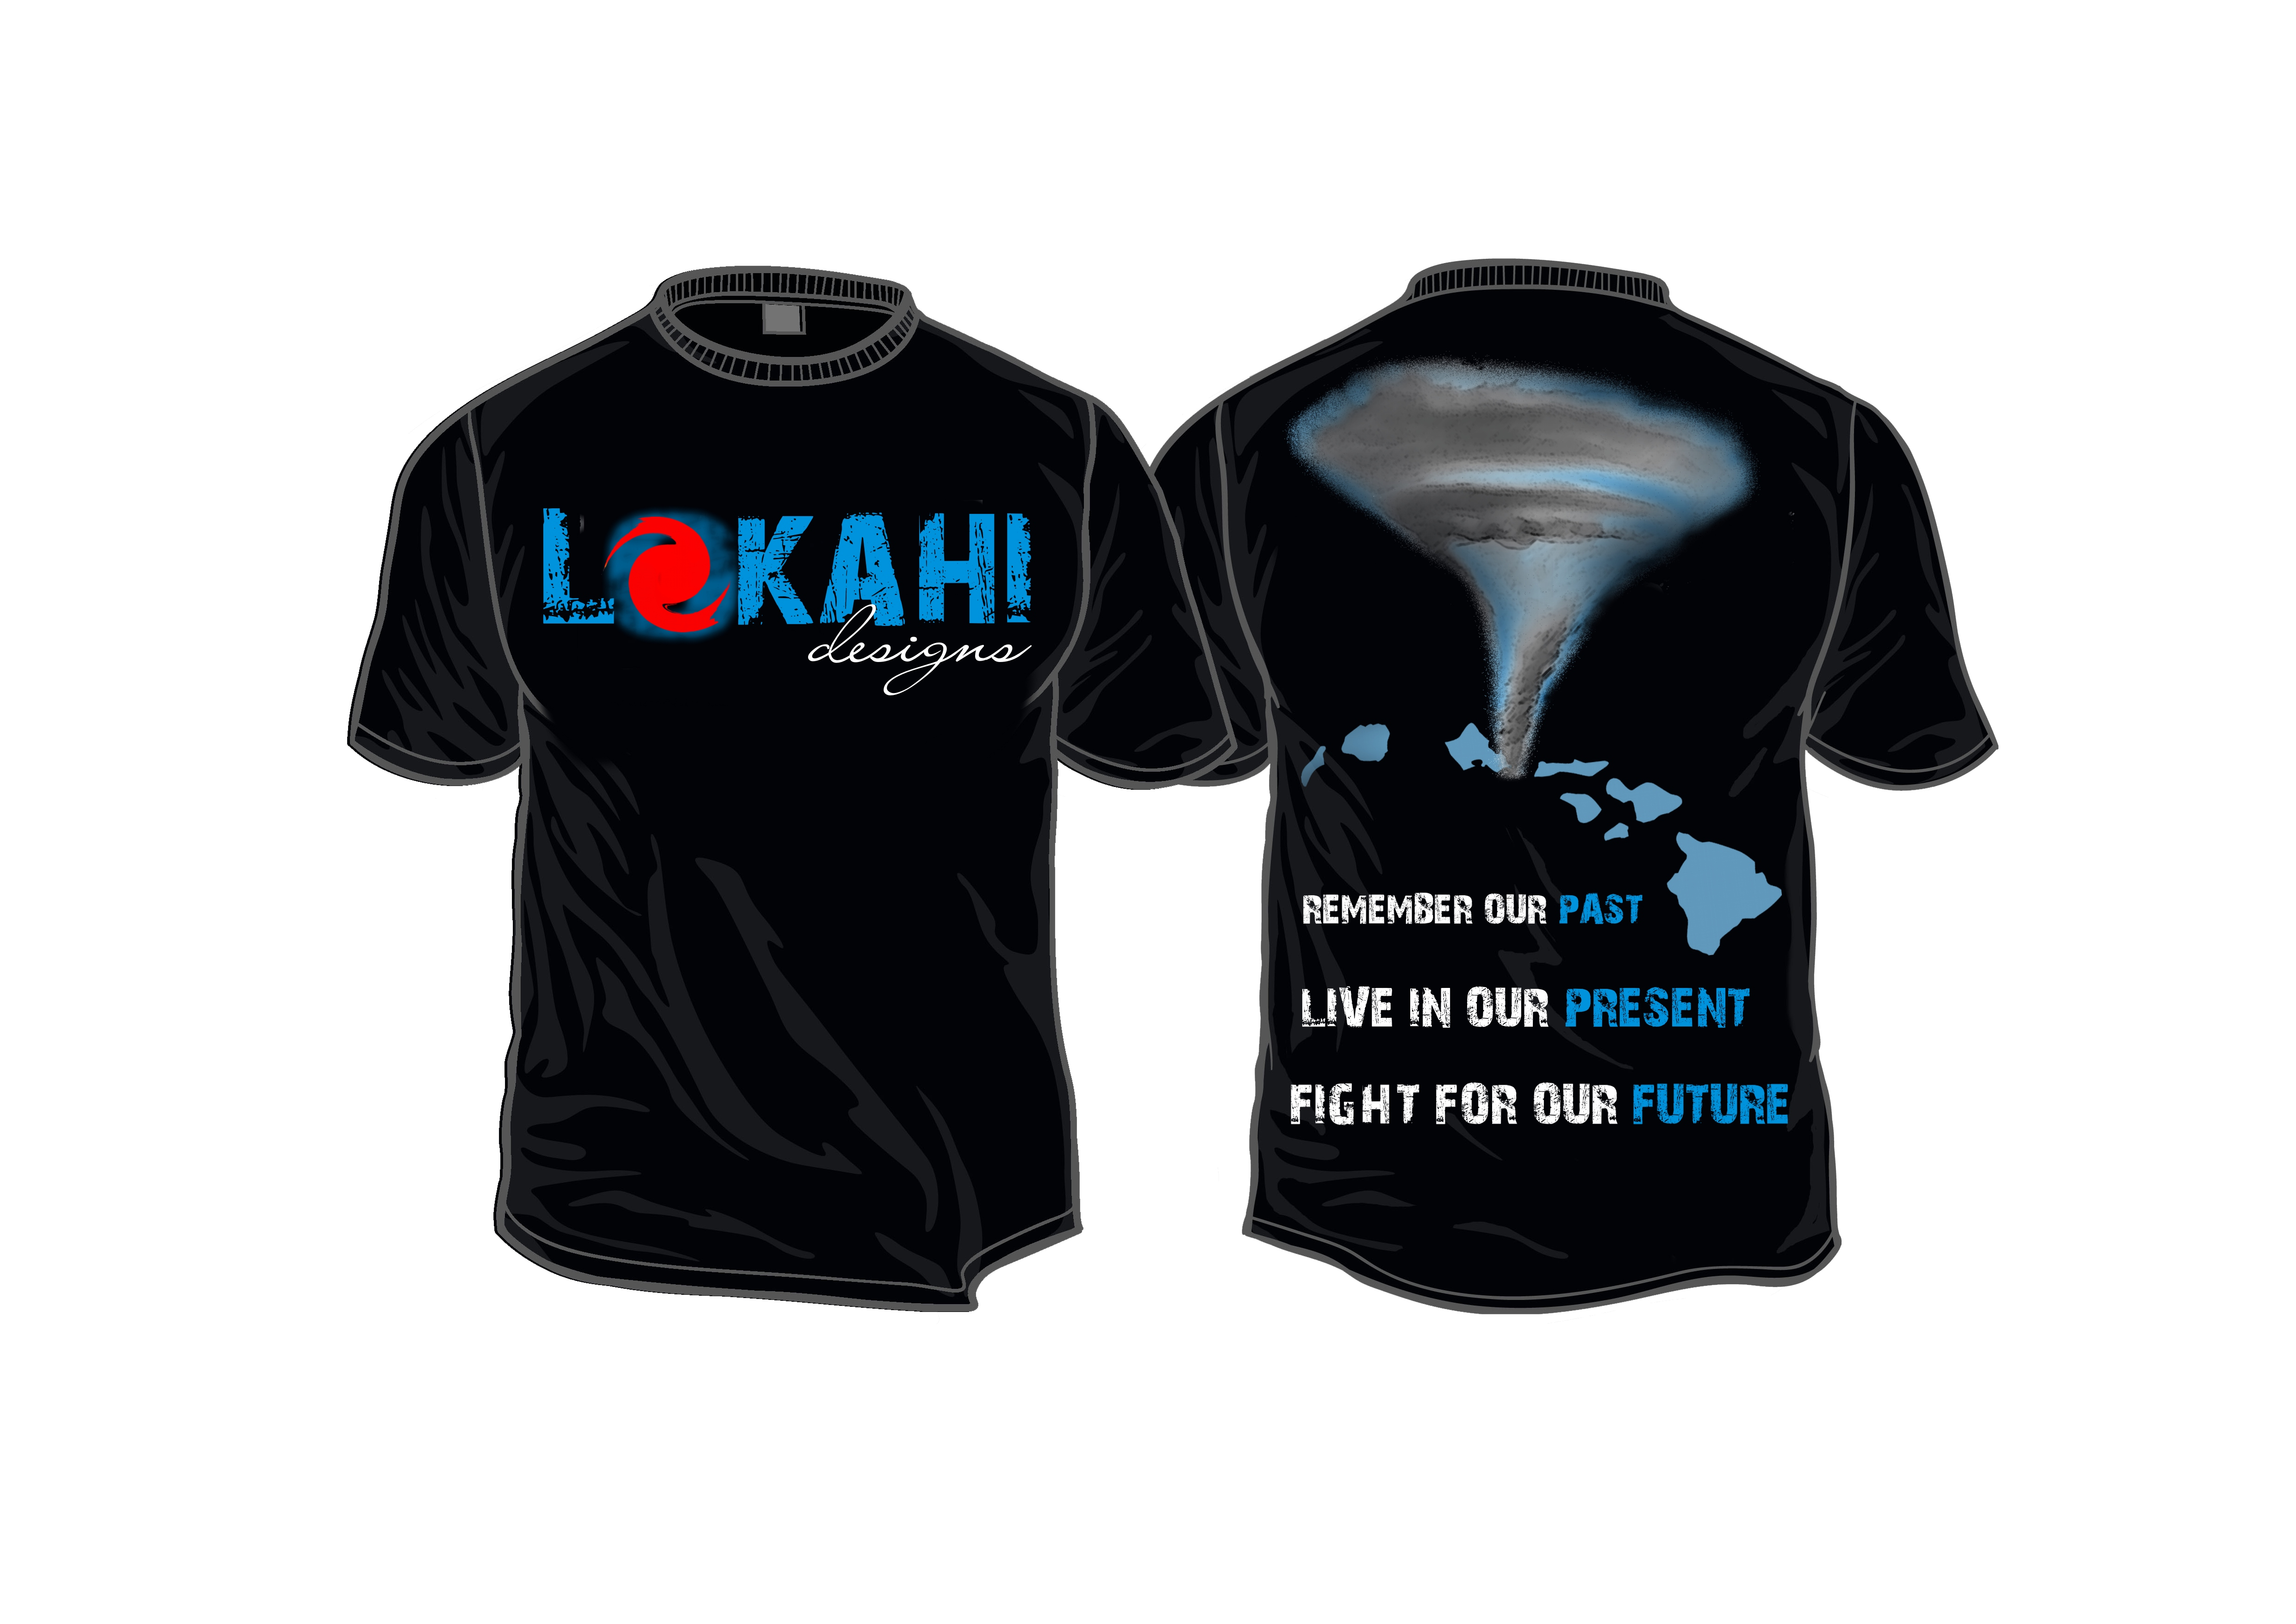 Clothing Design by Q_Division_Designs - Entry No. 141 in the Clothing Design Contest Creative Clothing Design for LOKAHI designs.